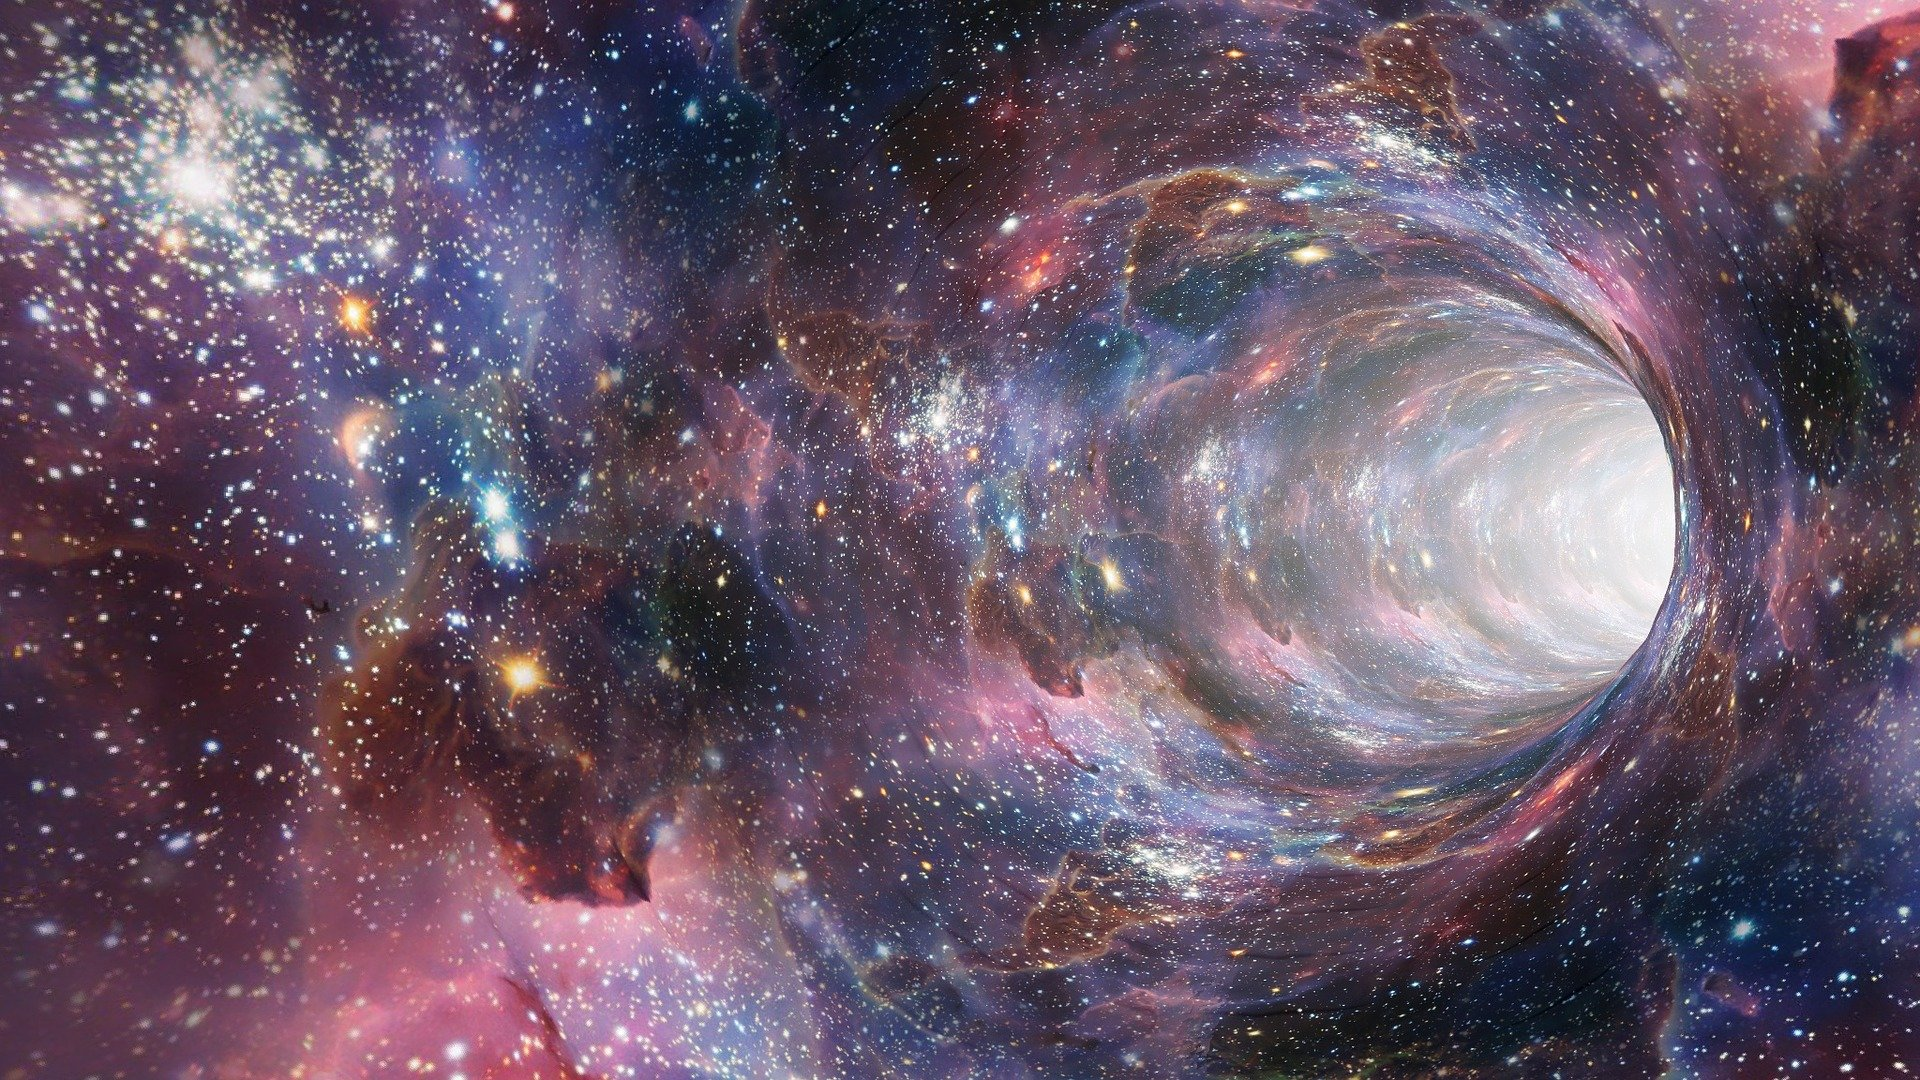 Multiverse can be a part of a deeper reality — a unique and quite understandable